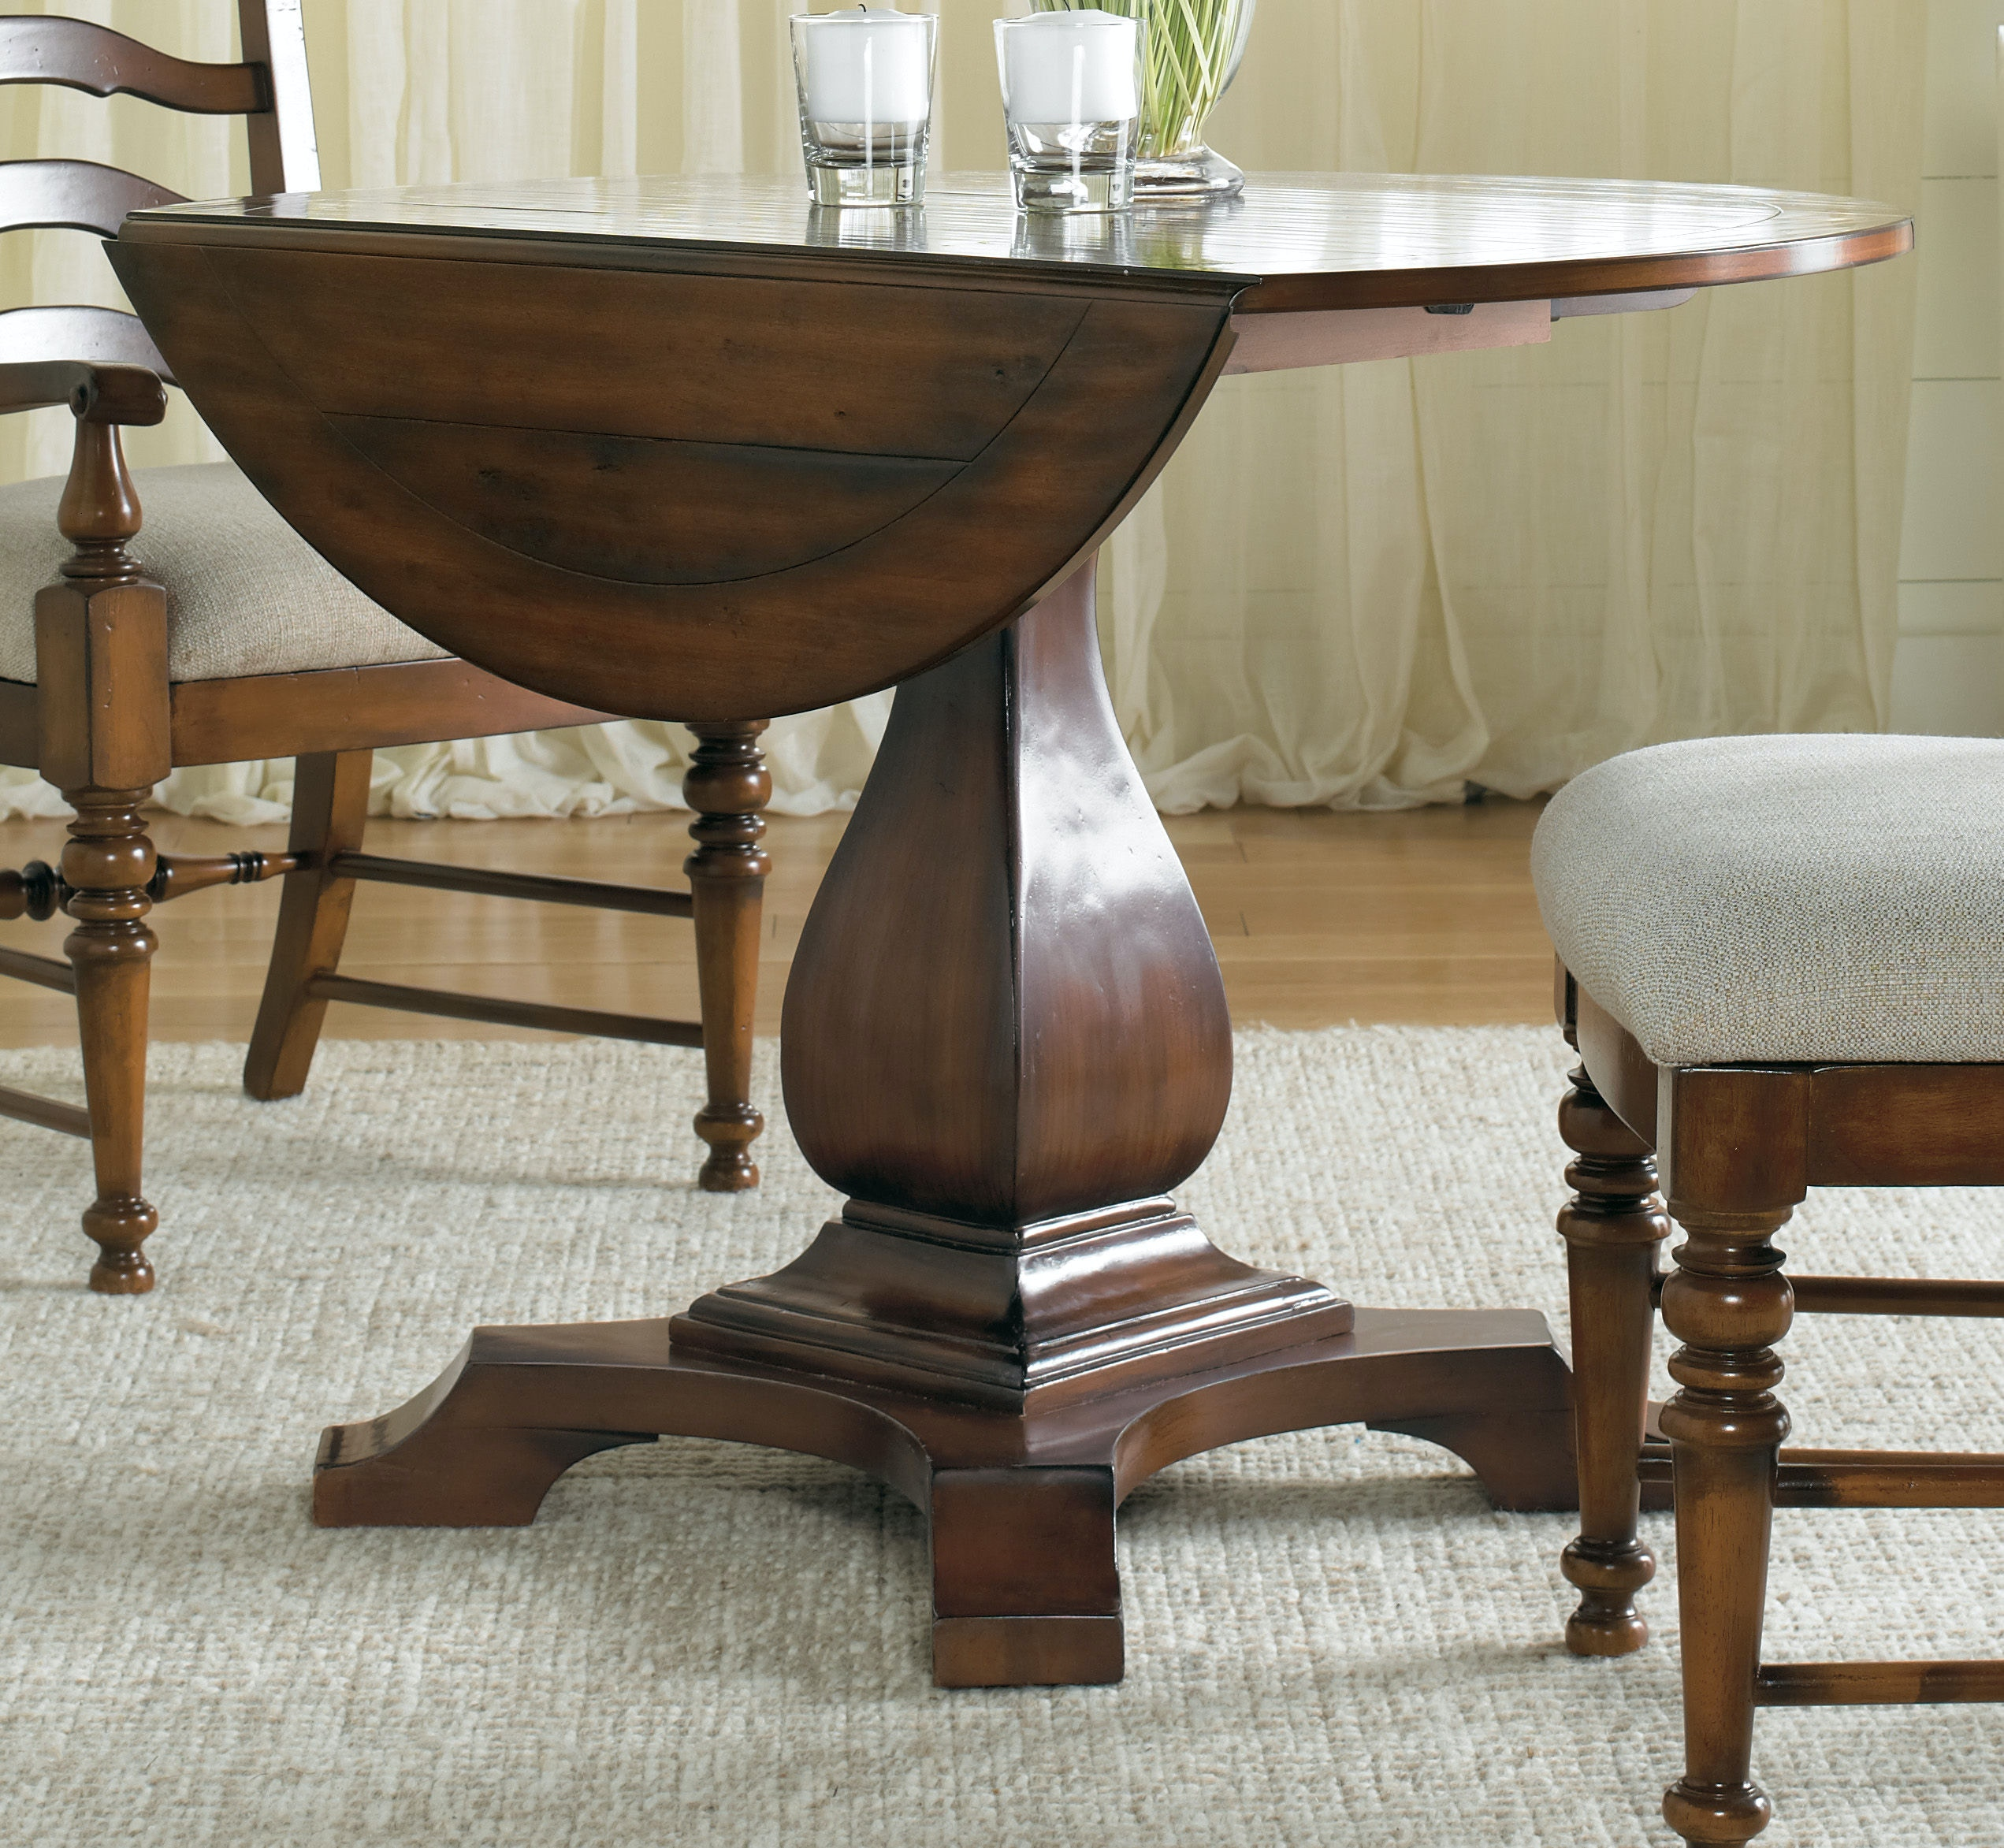 super popular 73c17 05dc2 Hooker Furniture Dining Room Waverly Place Round Drop Leaf ...